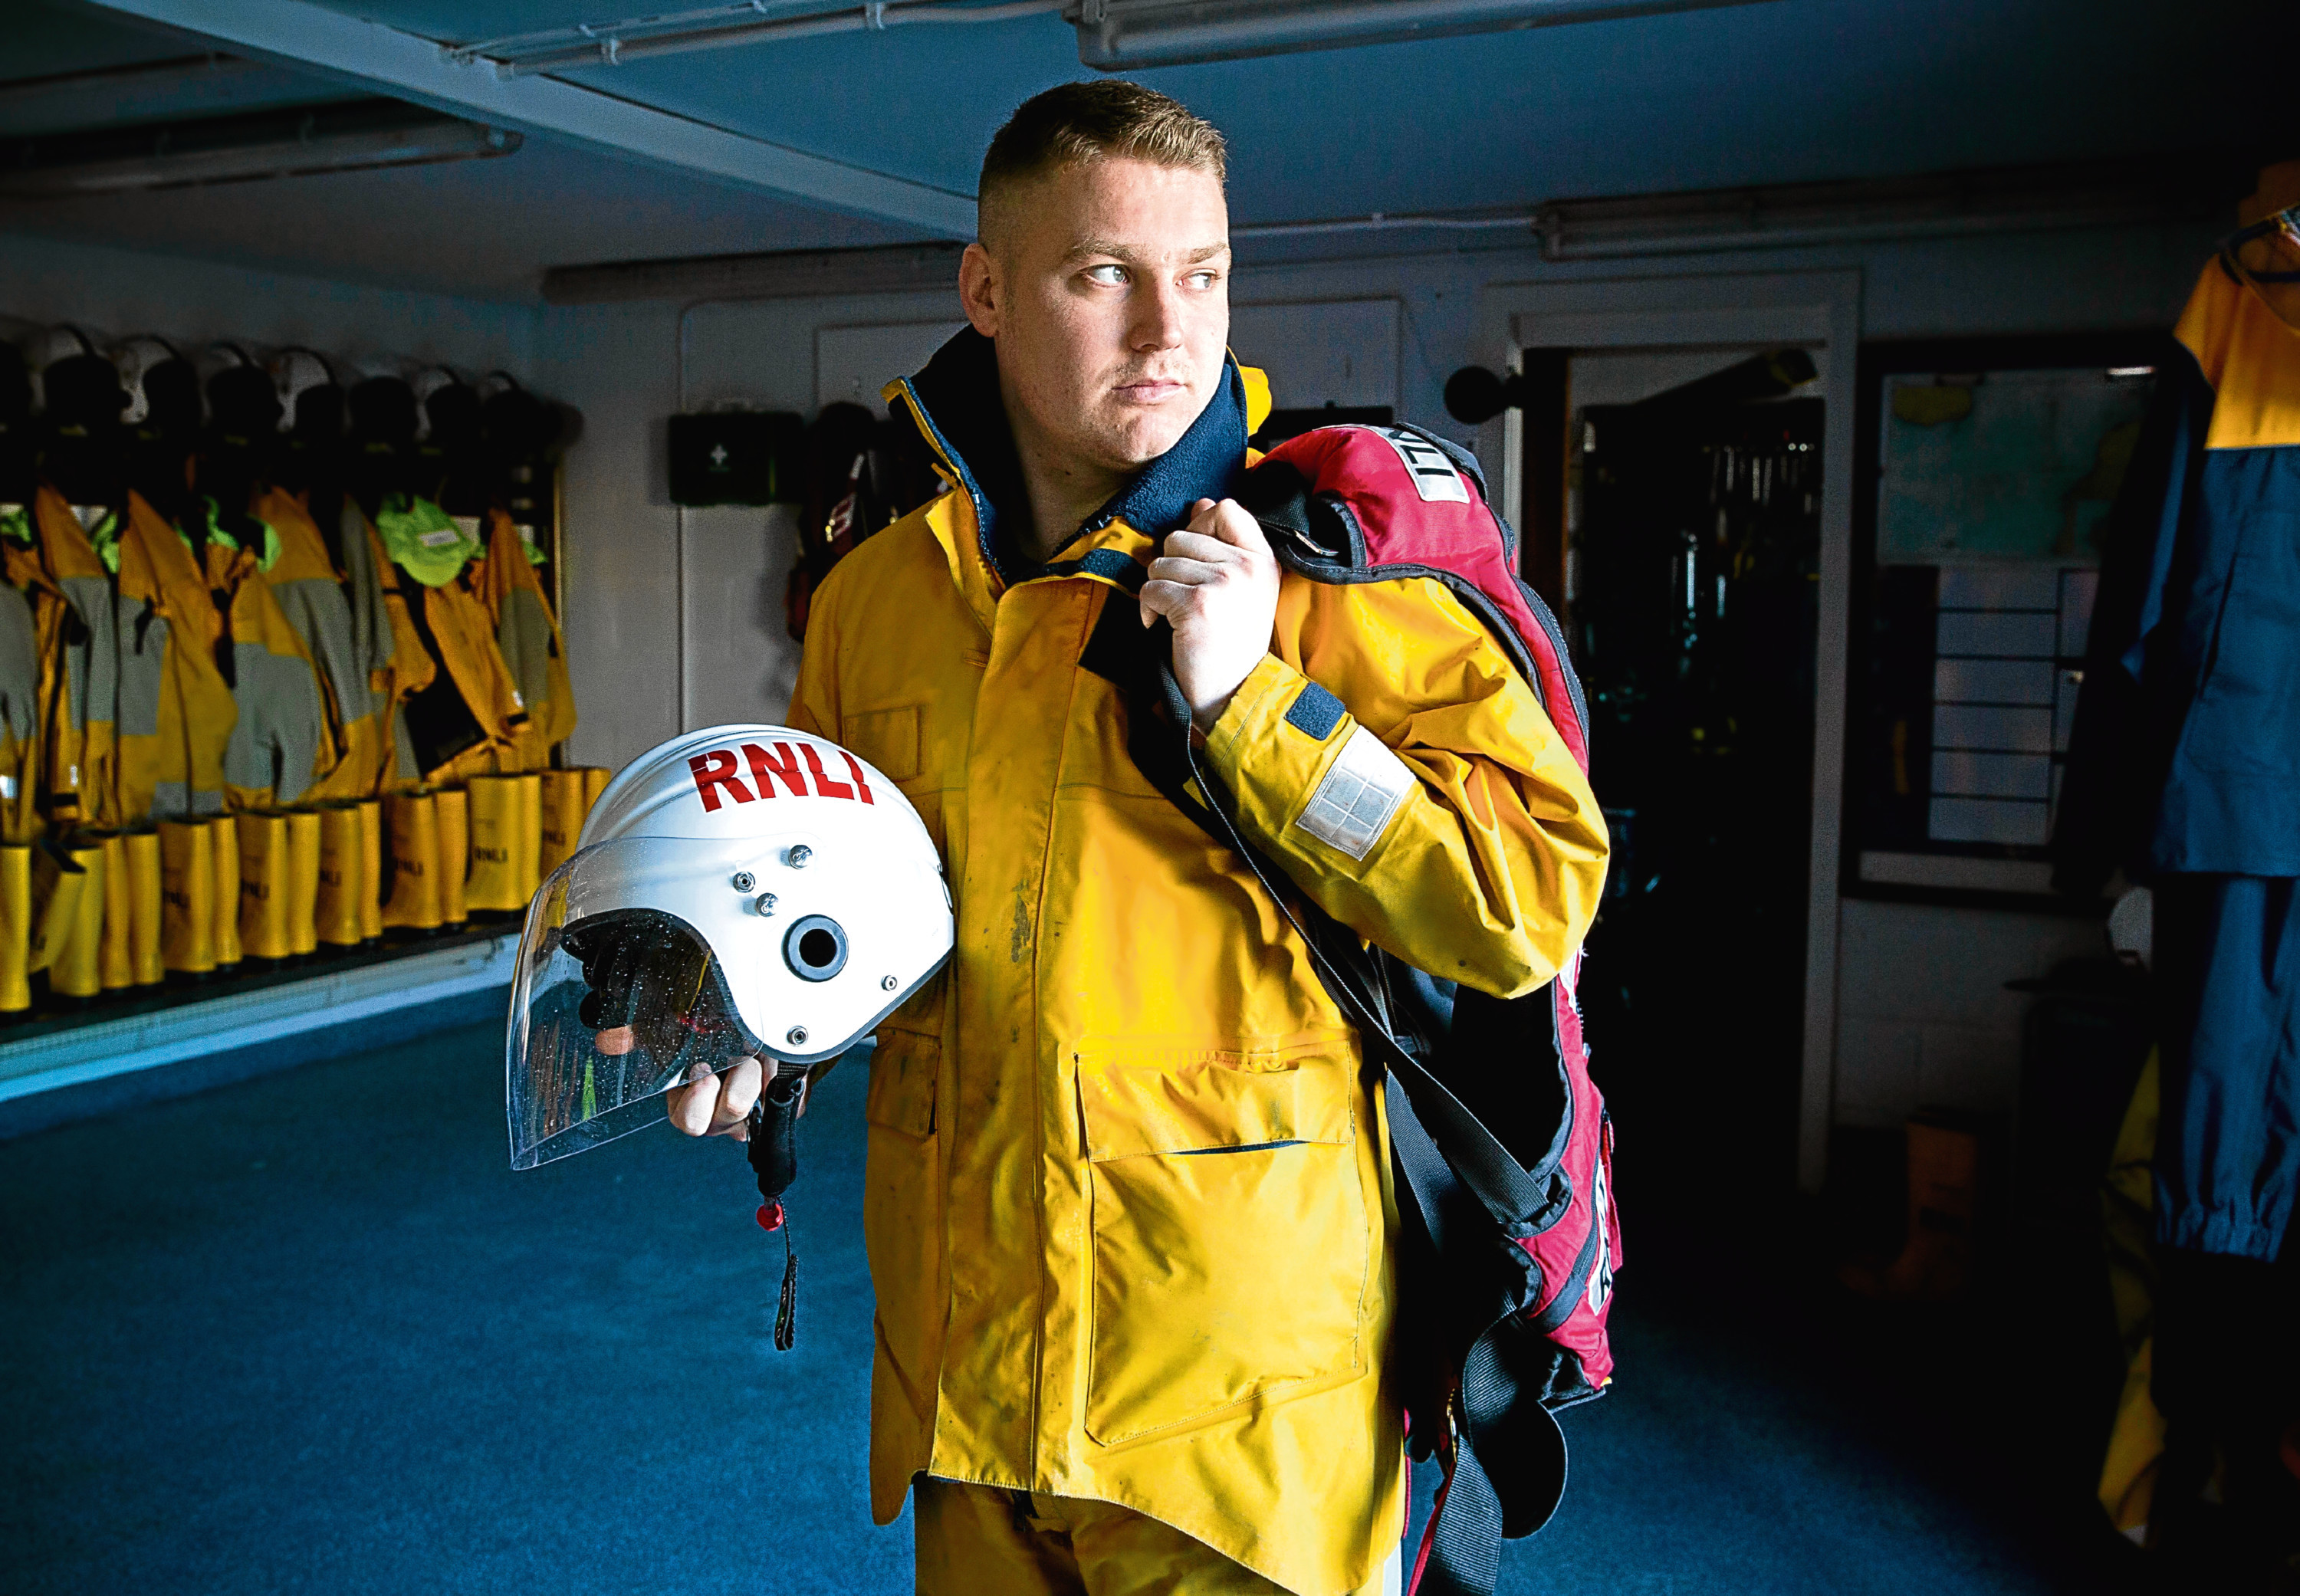 Callum Govus Girvan RNLI Coxswain was inspired to join the RNLI by a former teacher who was 2nd Coxswain at Girvan Davie butcher (Jamie Williamson)